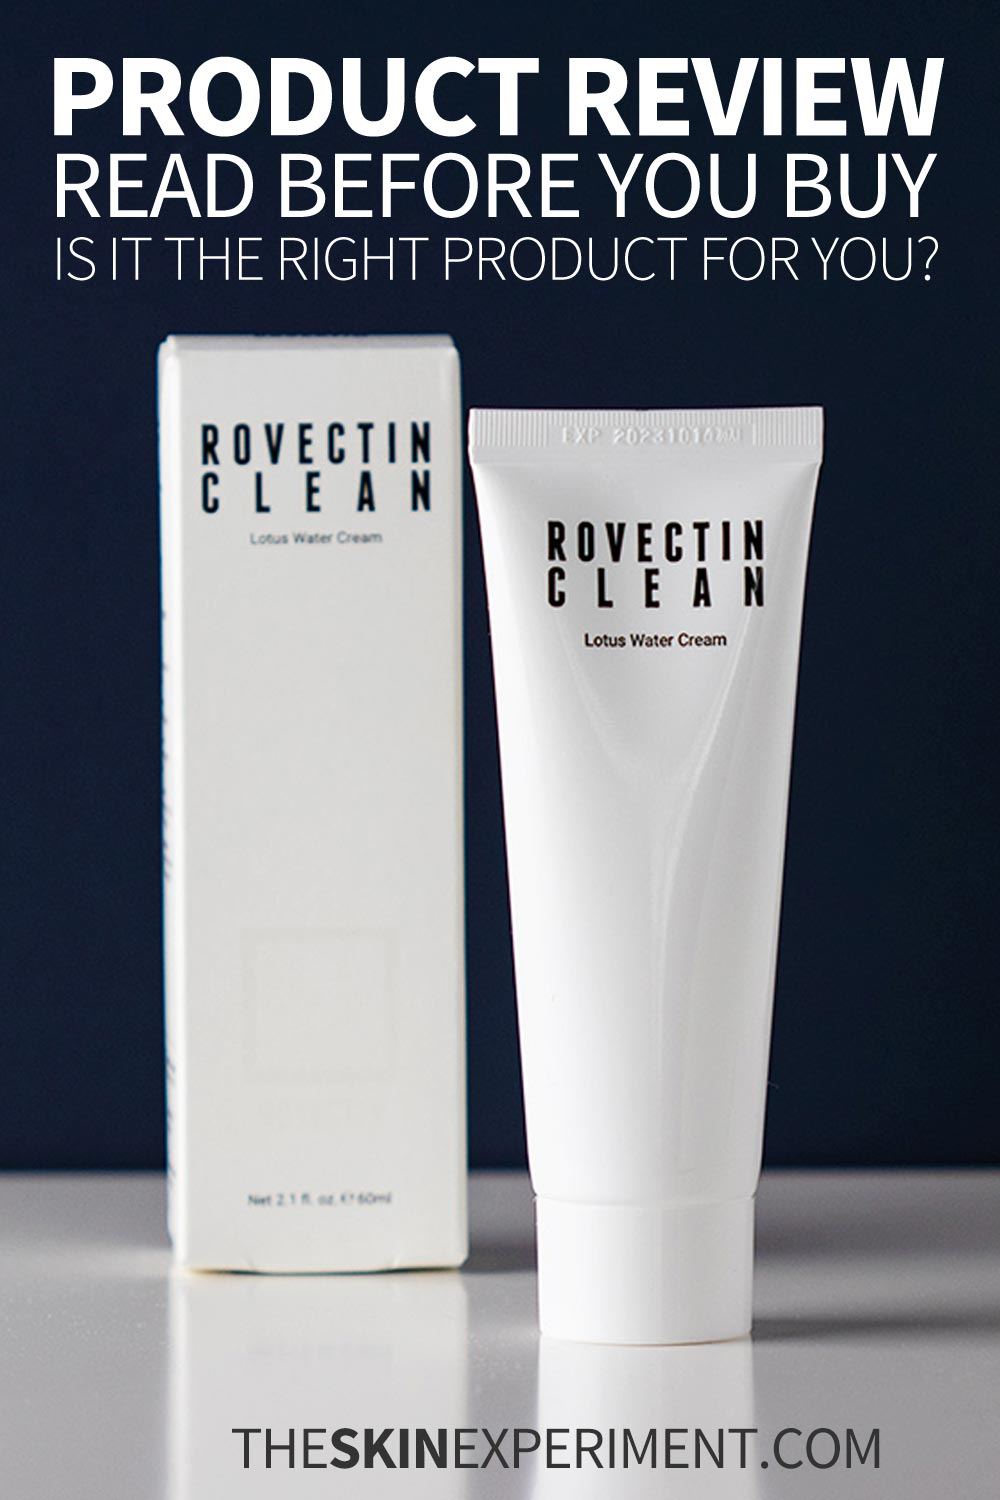 Product Review: Rovectin Clean Lotus Water Cream